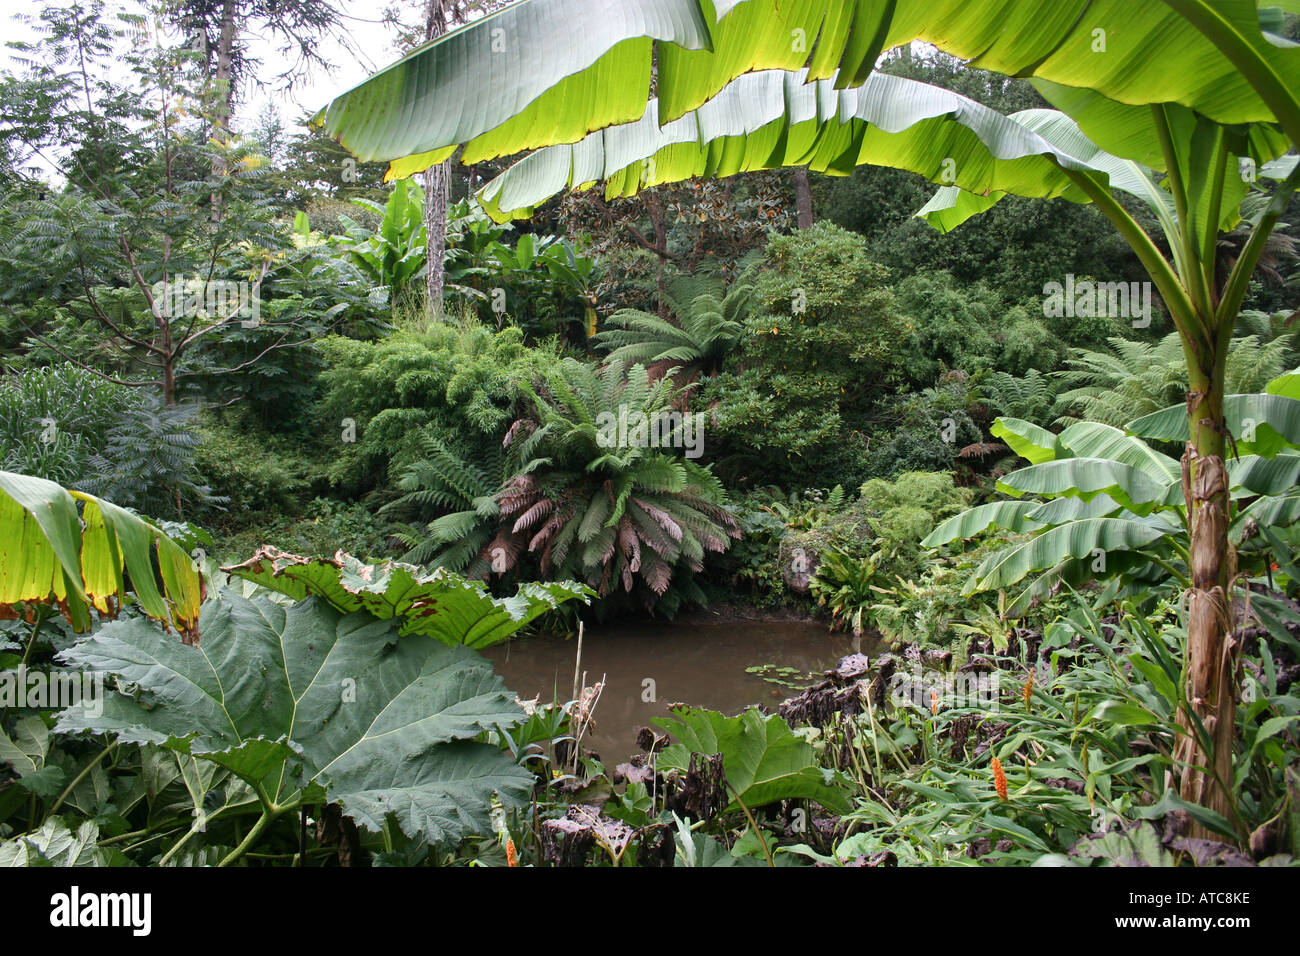 HORTICULTURE. SUB TROPICAL JUNGLE GARDEN AND POND. THE LOST GARDENS OF  HELIGAN. CORNWALL. UK. EUROPE.